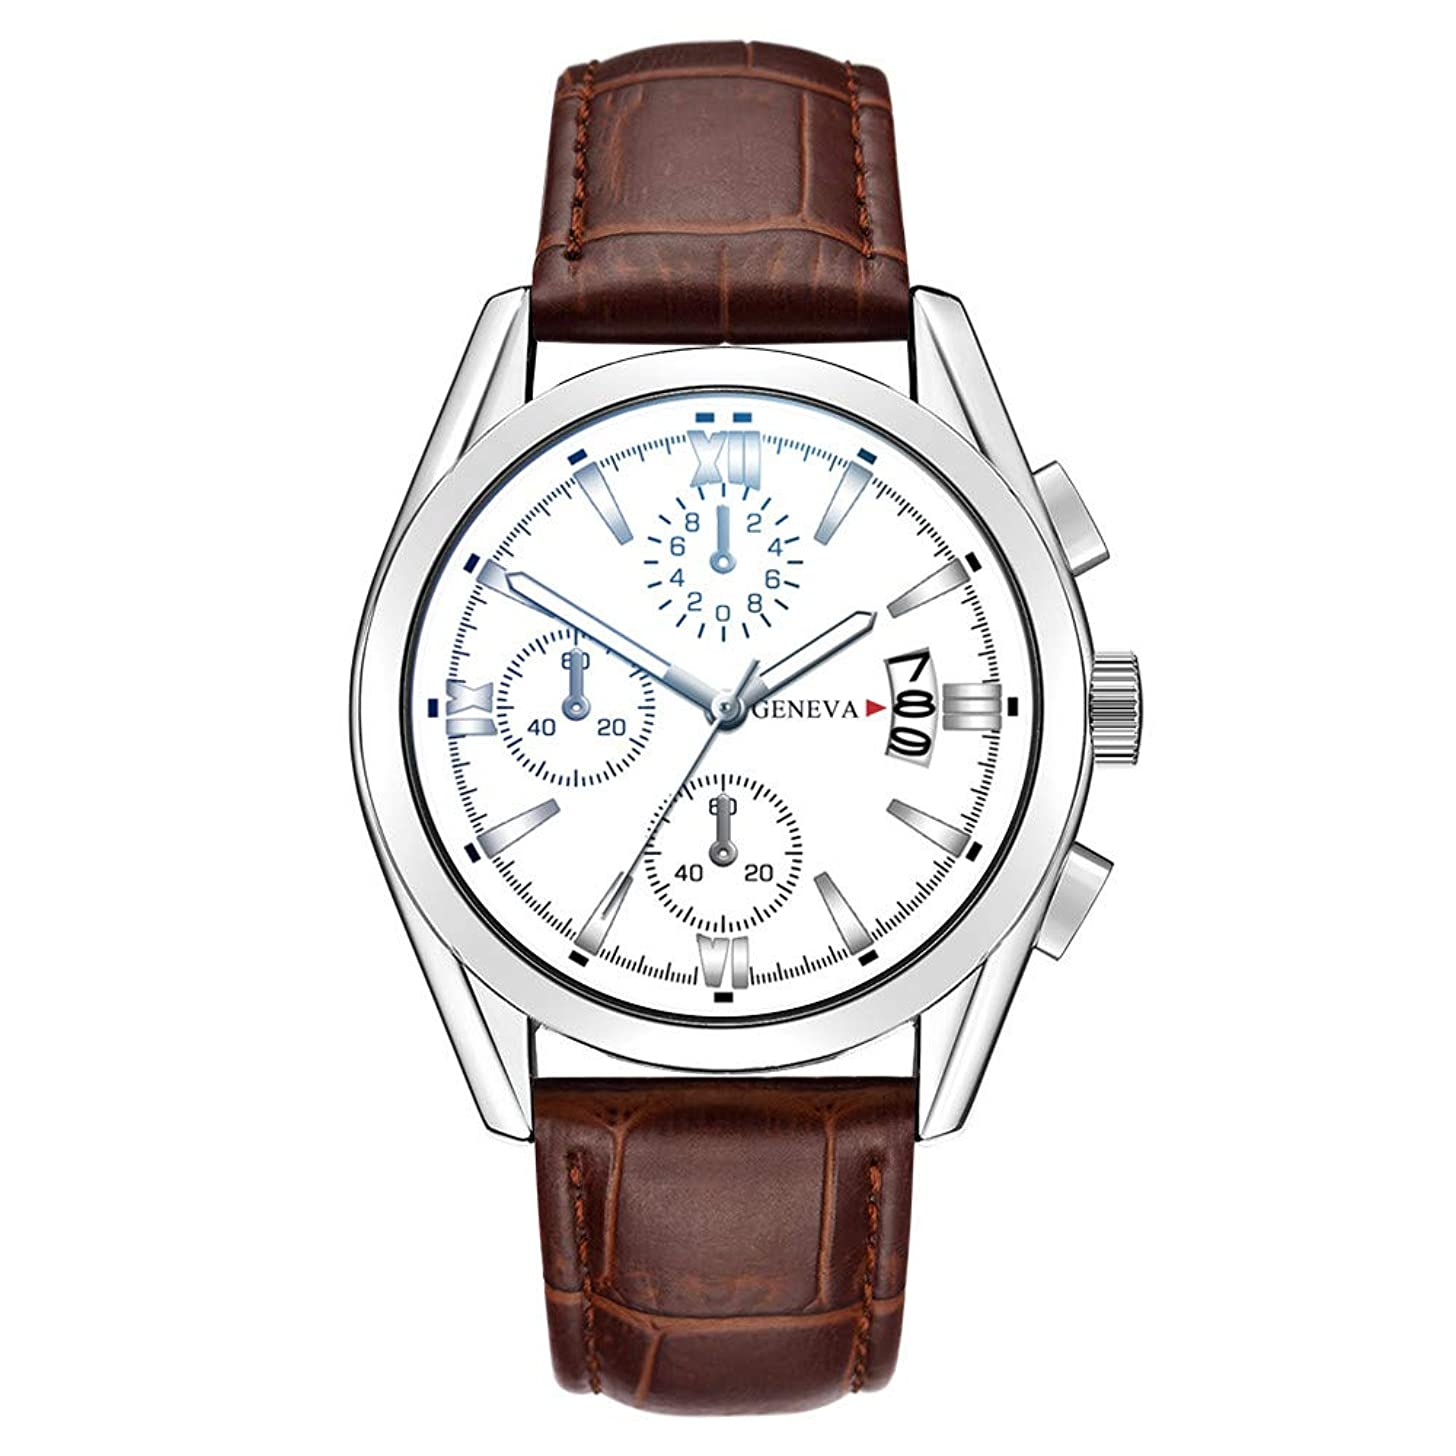 Fashion Men's Watch Stainless Steel Dial Casual Business Leather Bands Analog Quartz Watches